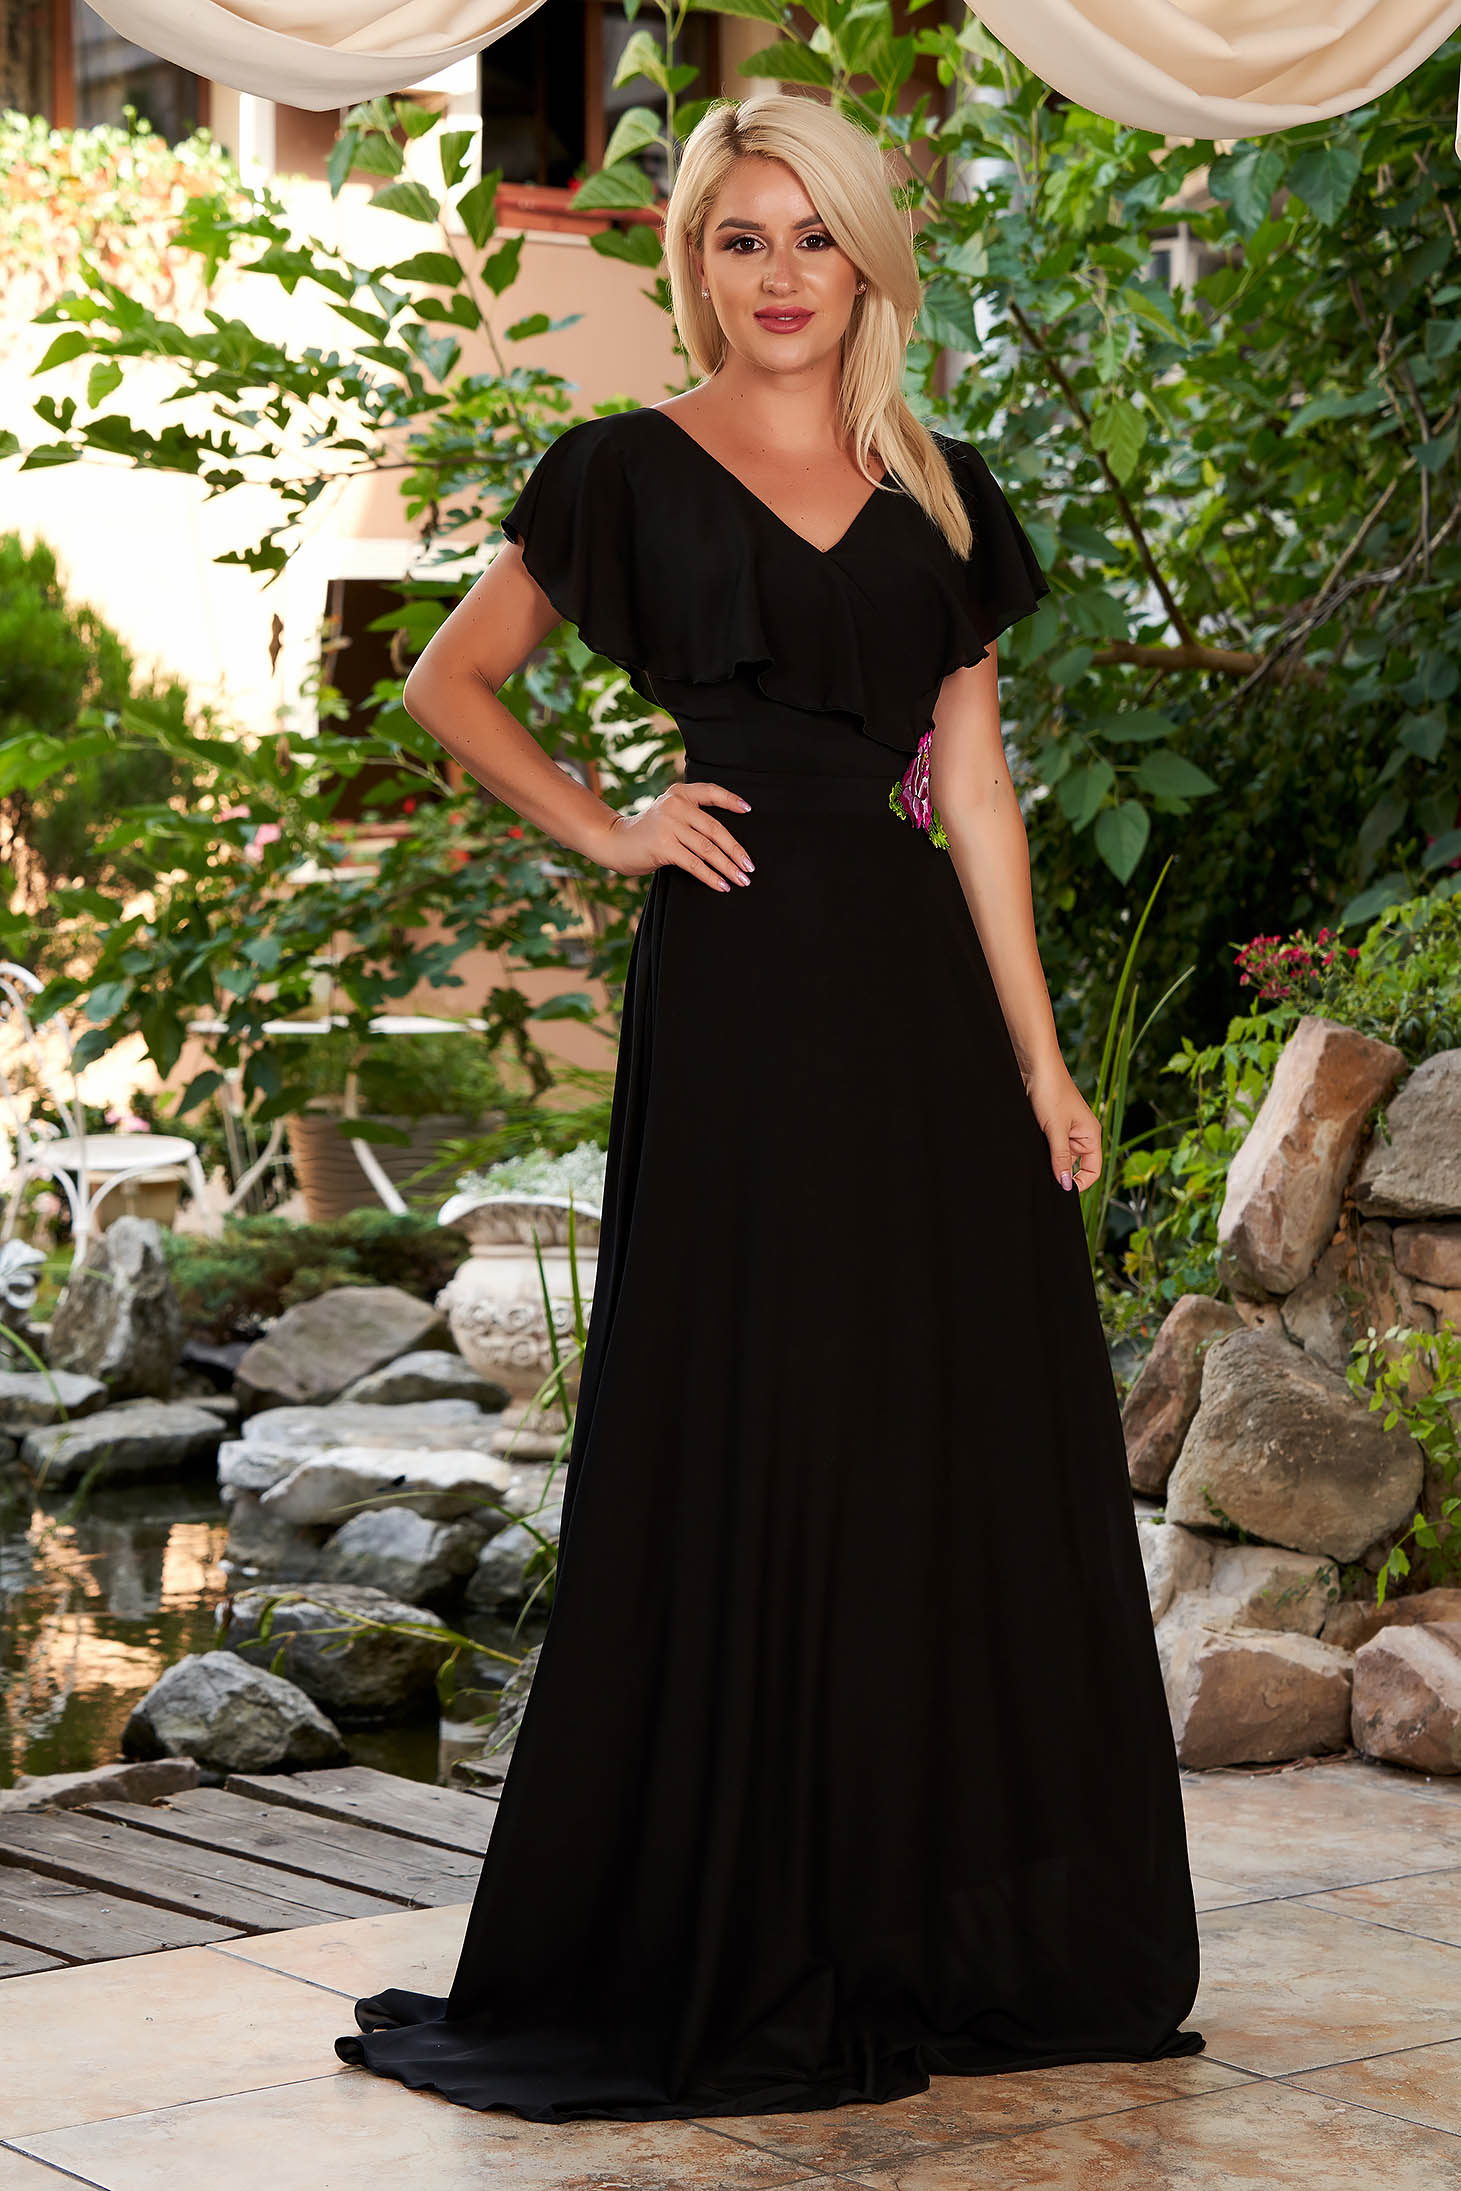 StarShinerS black dress occasional long from veil fabric with deep cleavage frilly trim around cleavage line